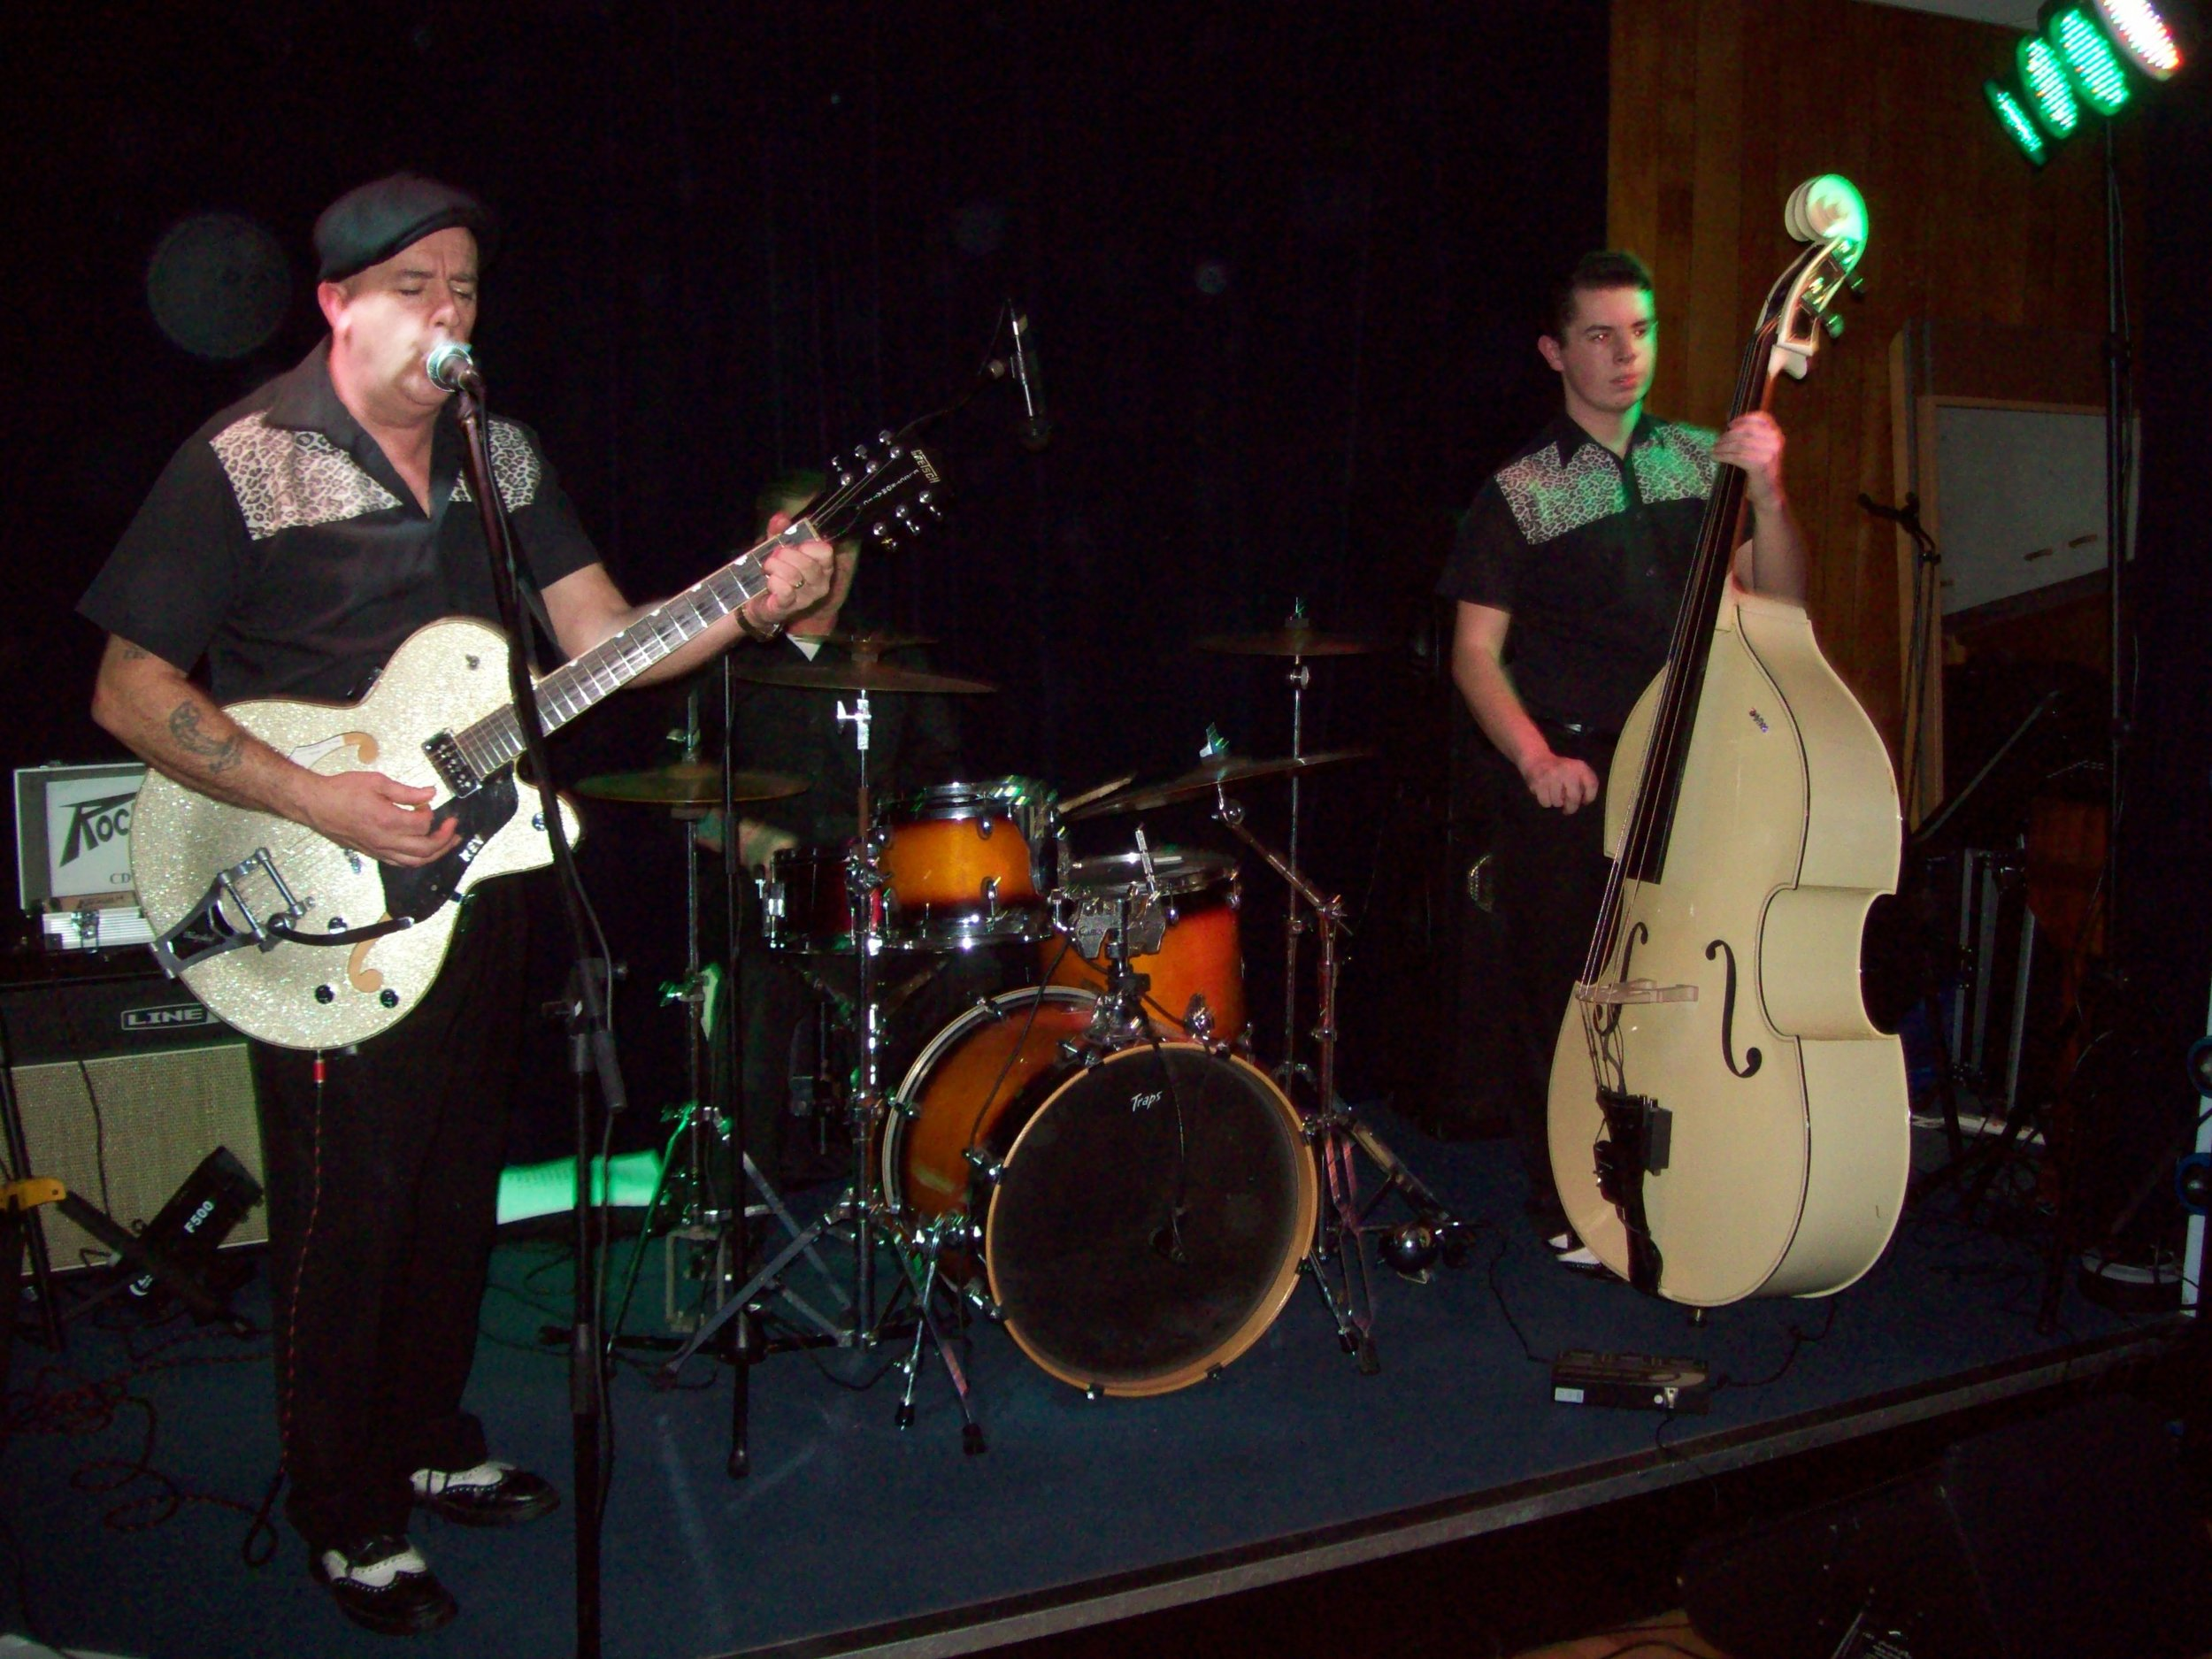 2015-1-23 Band Night with Rockin'Em 010.JPG